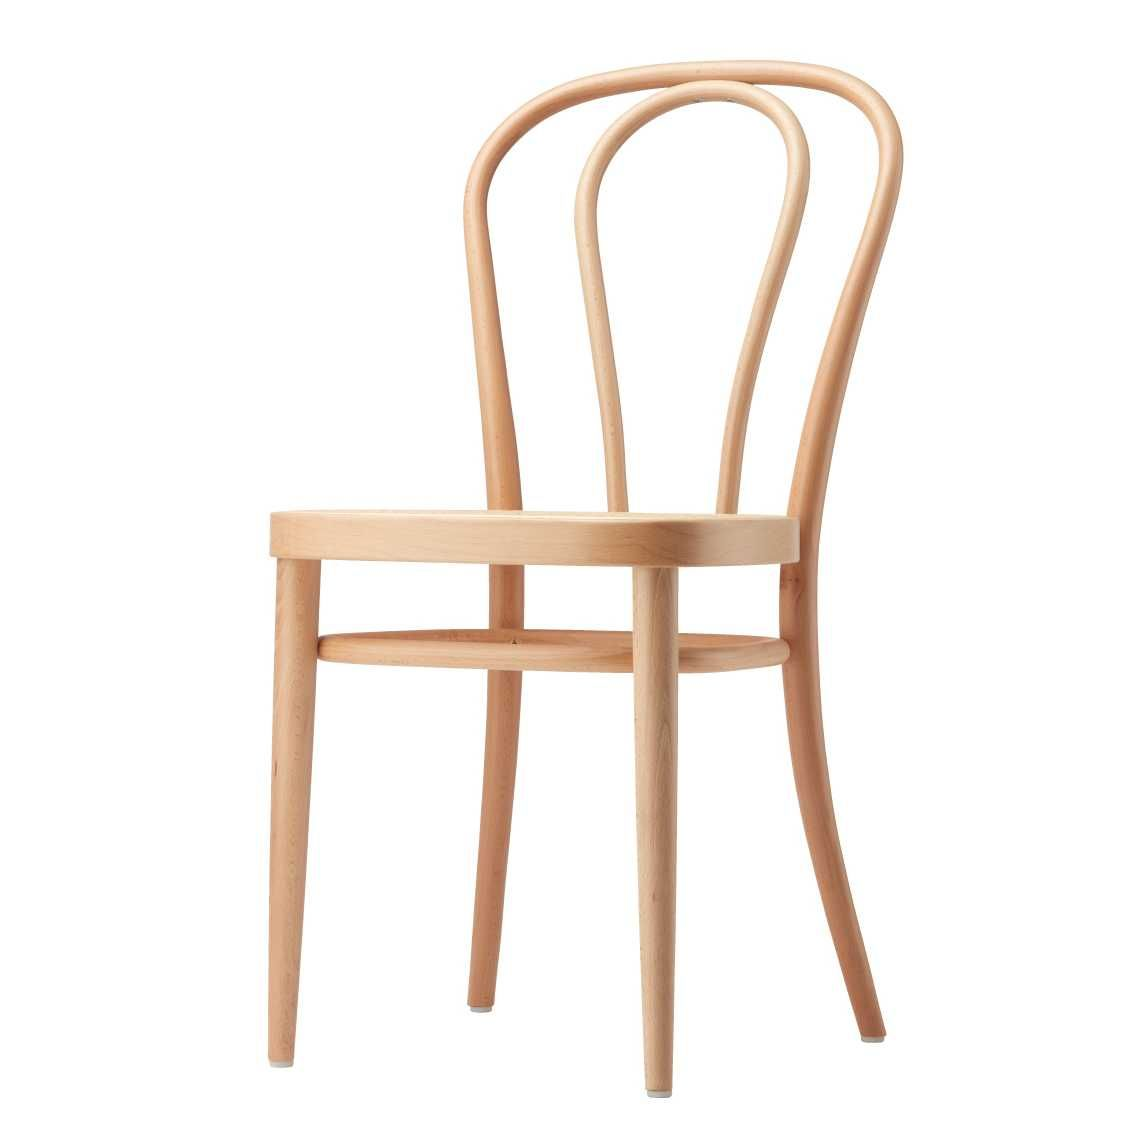 218 Thonet Stoel €677 via Mister Design